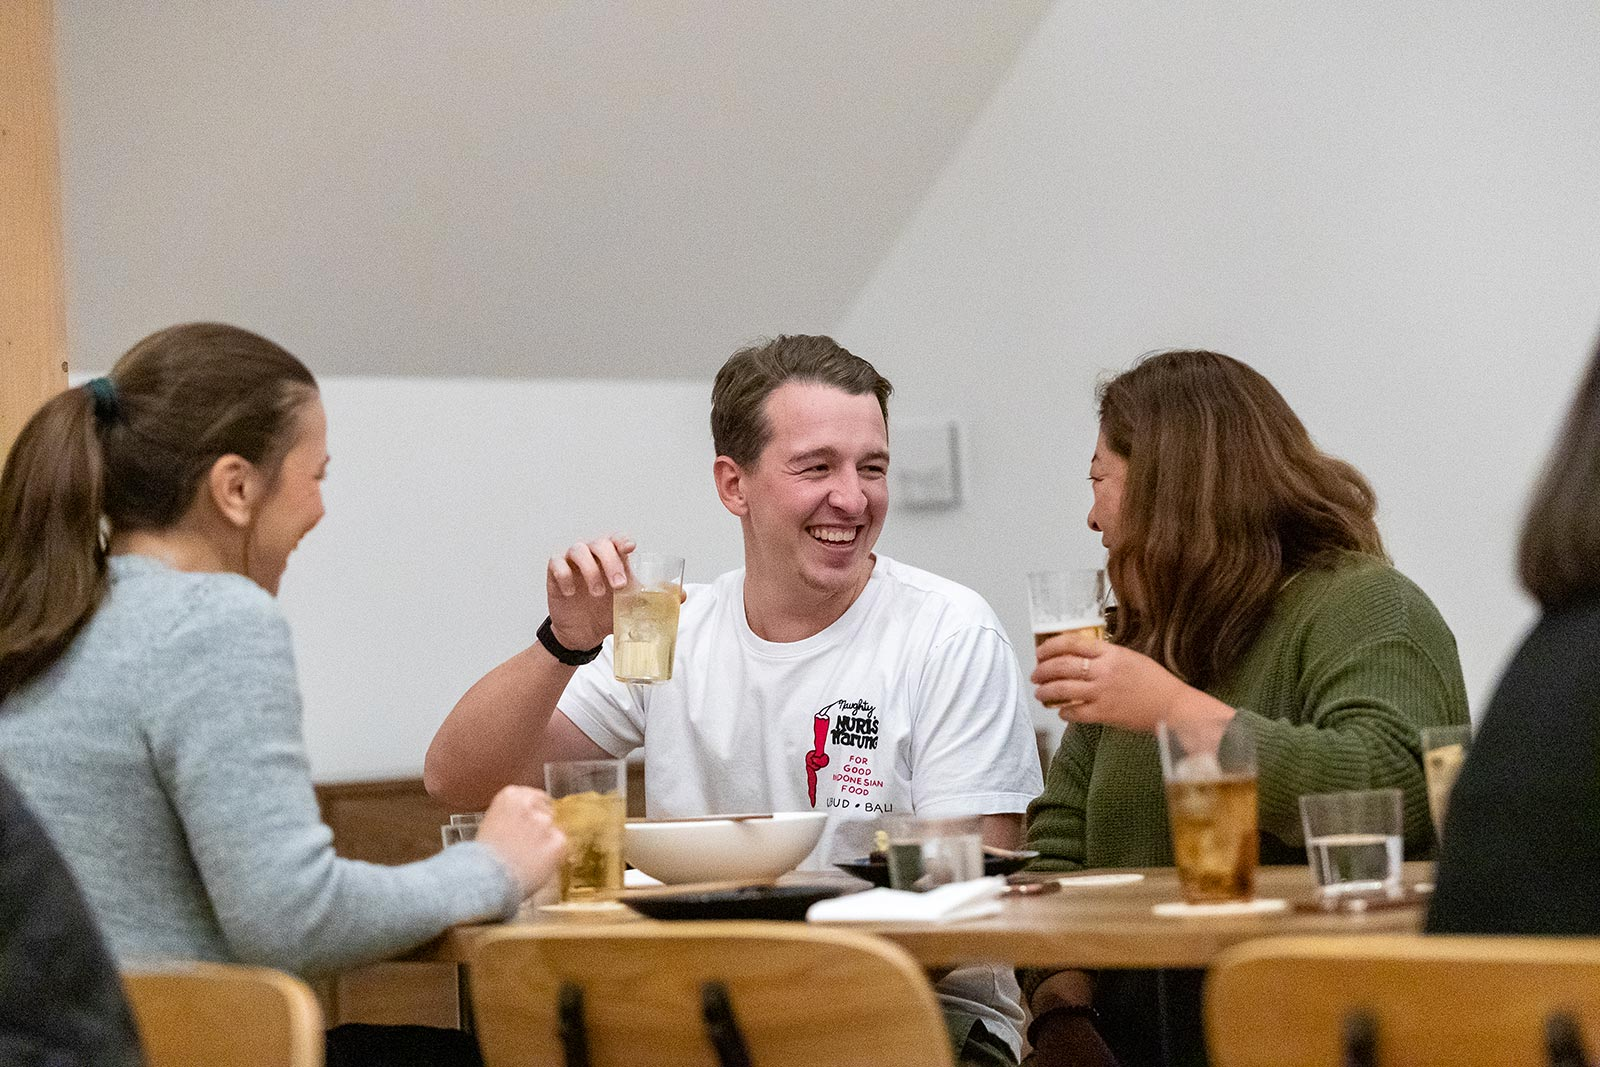 Group of three people at dinner talking and laughing together